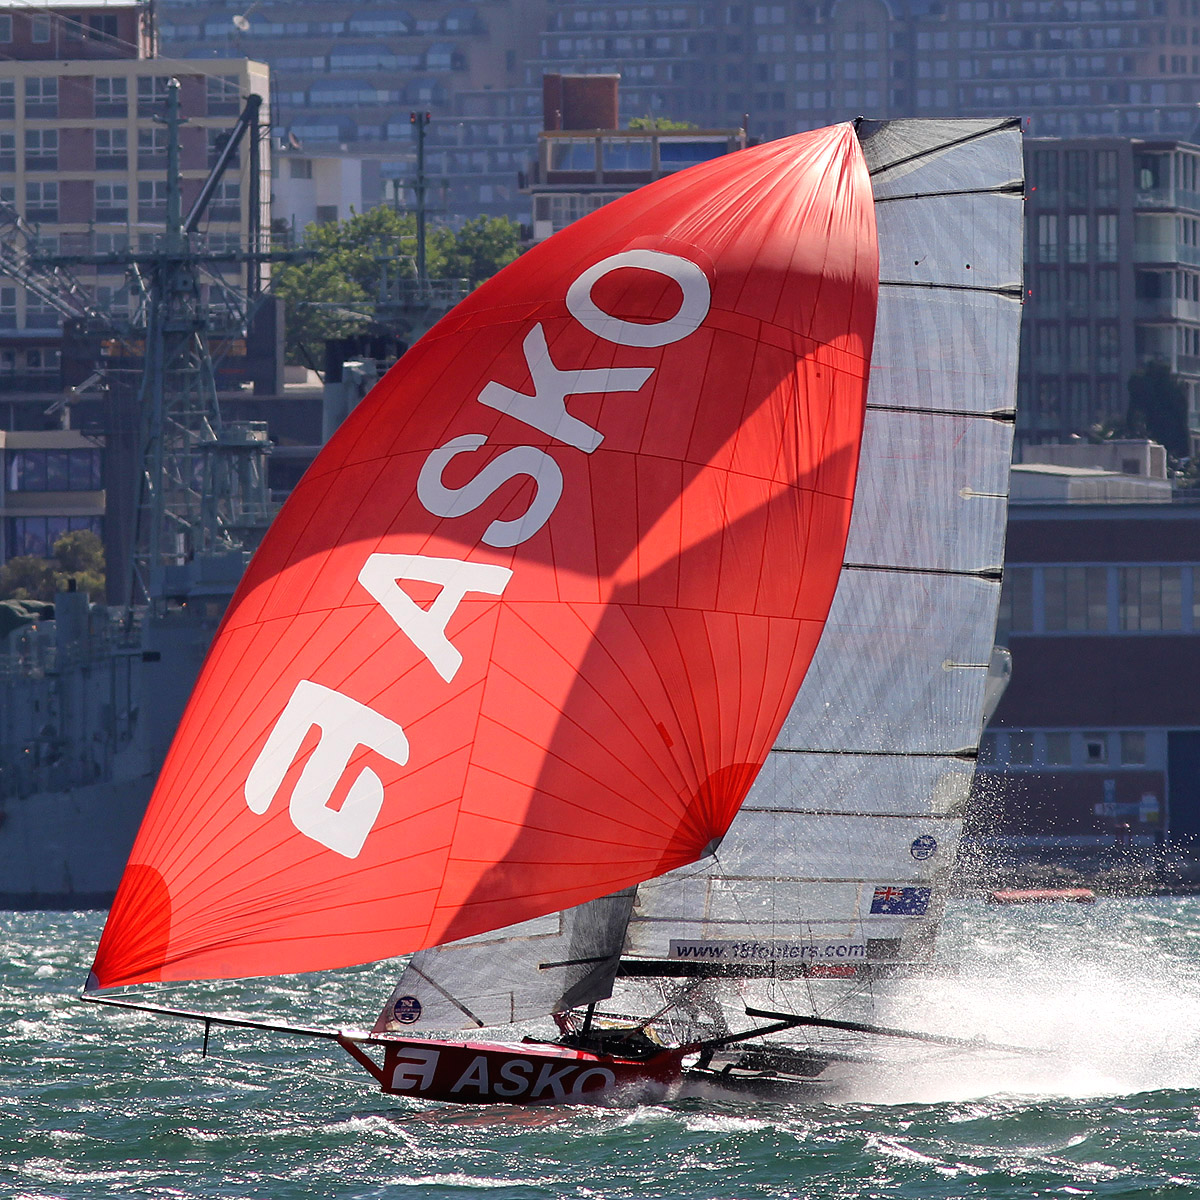 asko-appliances-races-towards-the-finish-line-to-grab-second-place